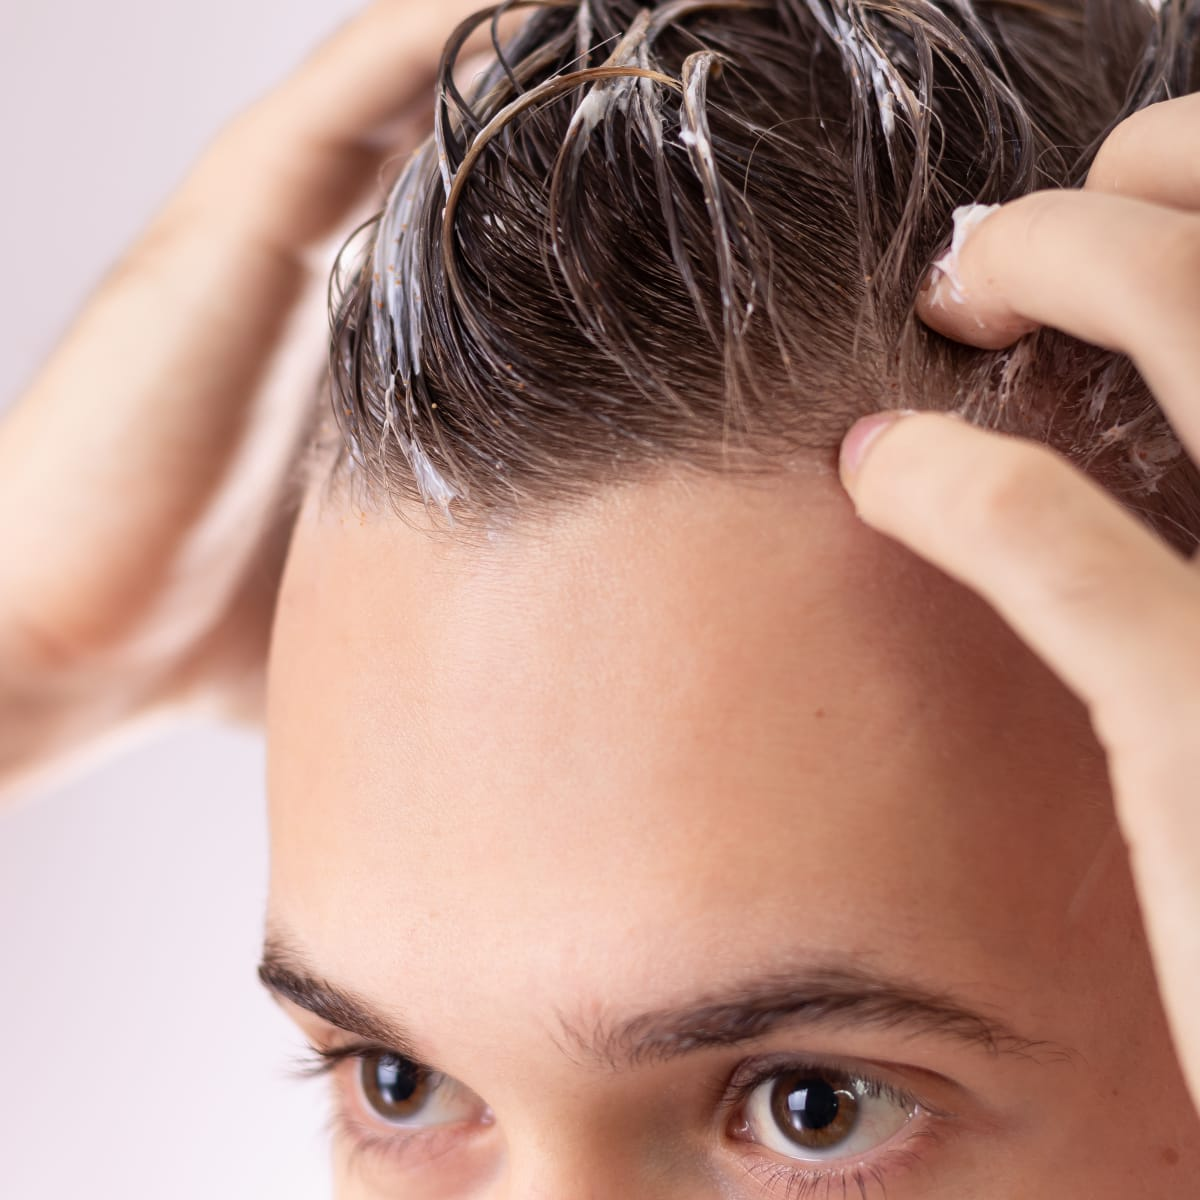 Best Men's Hair Products for Fine Hair